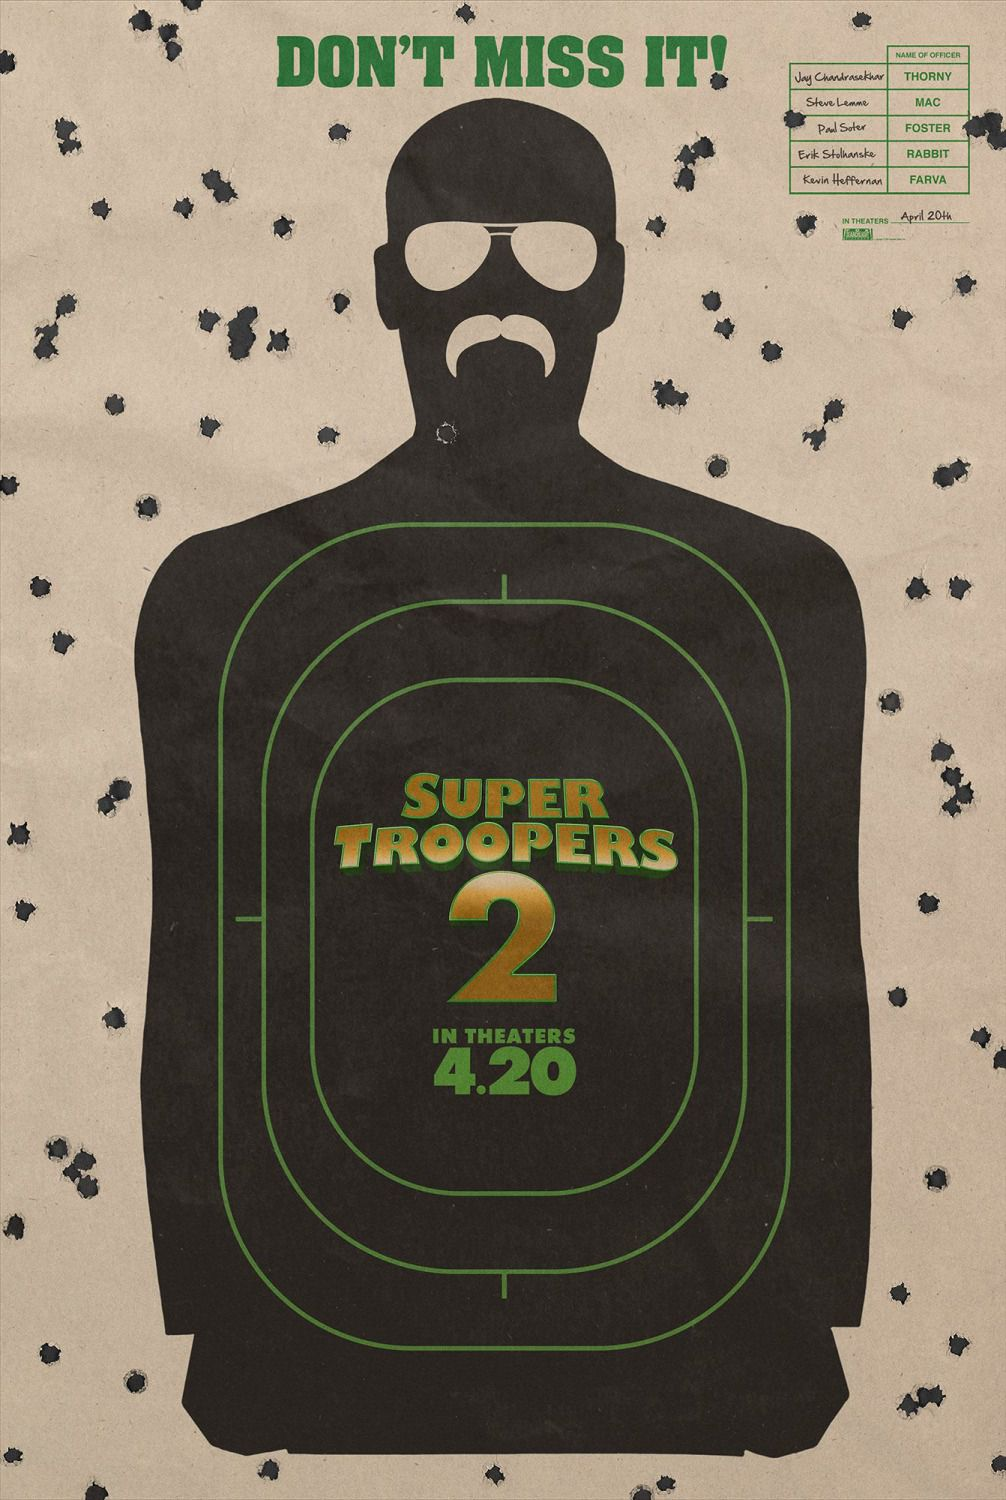 Super Troopers 2 by Jay Chandrasekhar - film poster